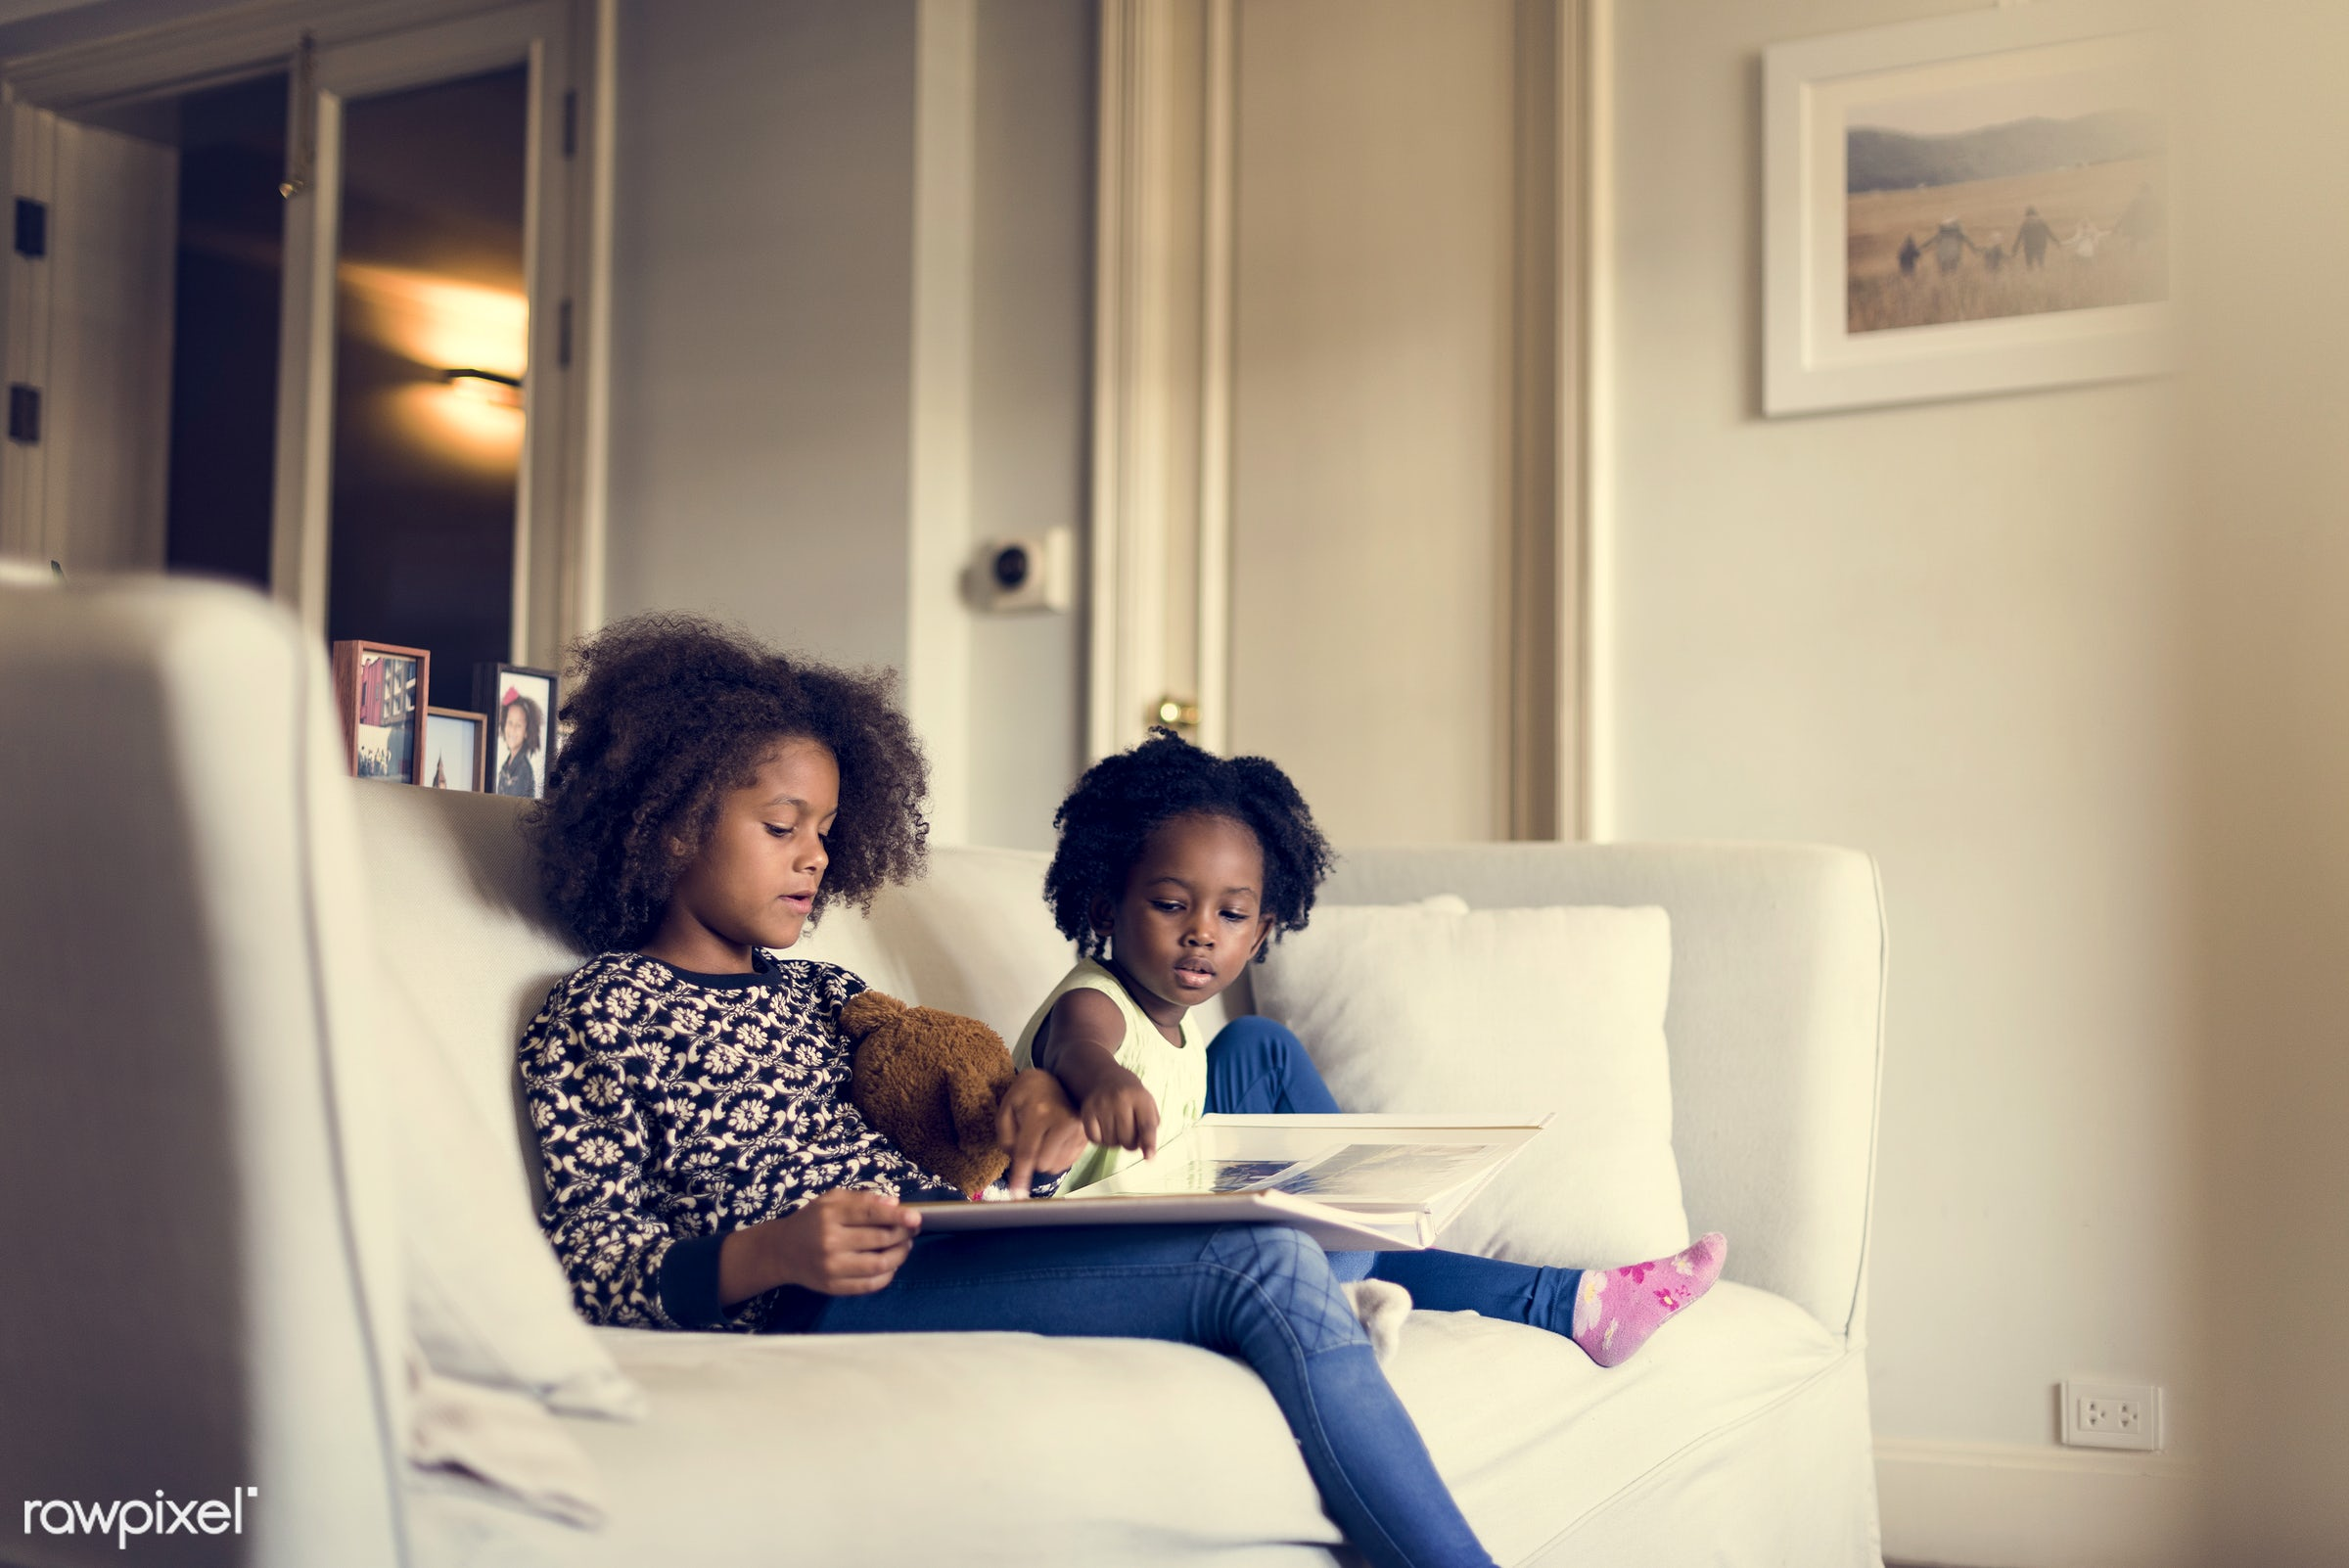 calm, home, african, freedom, residential, relax, house, people, sister, life, family, serenity, wellness, bear, doll, home...